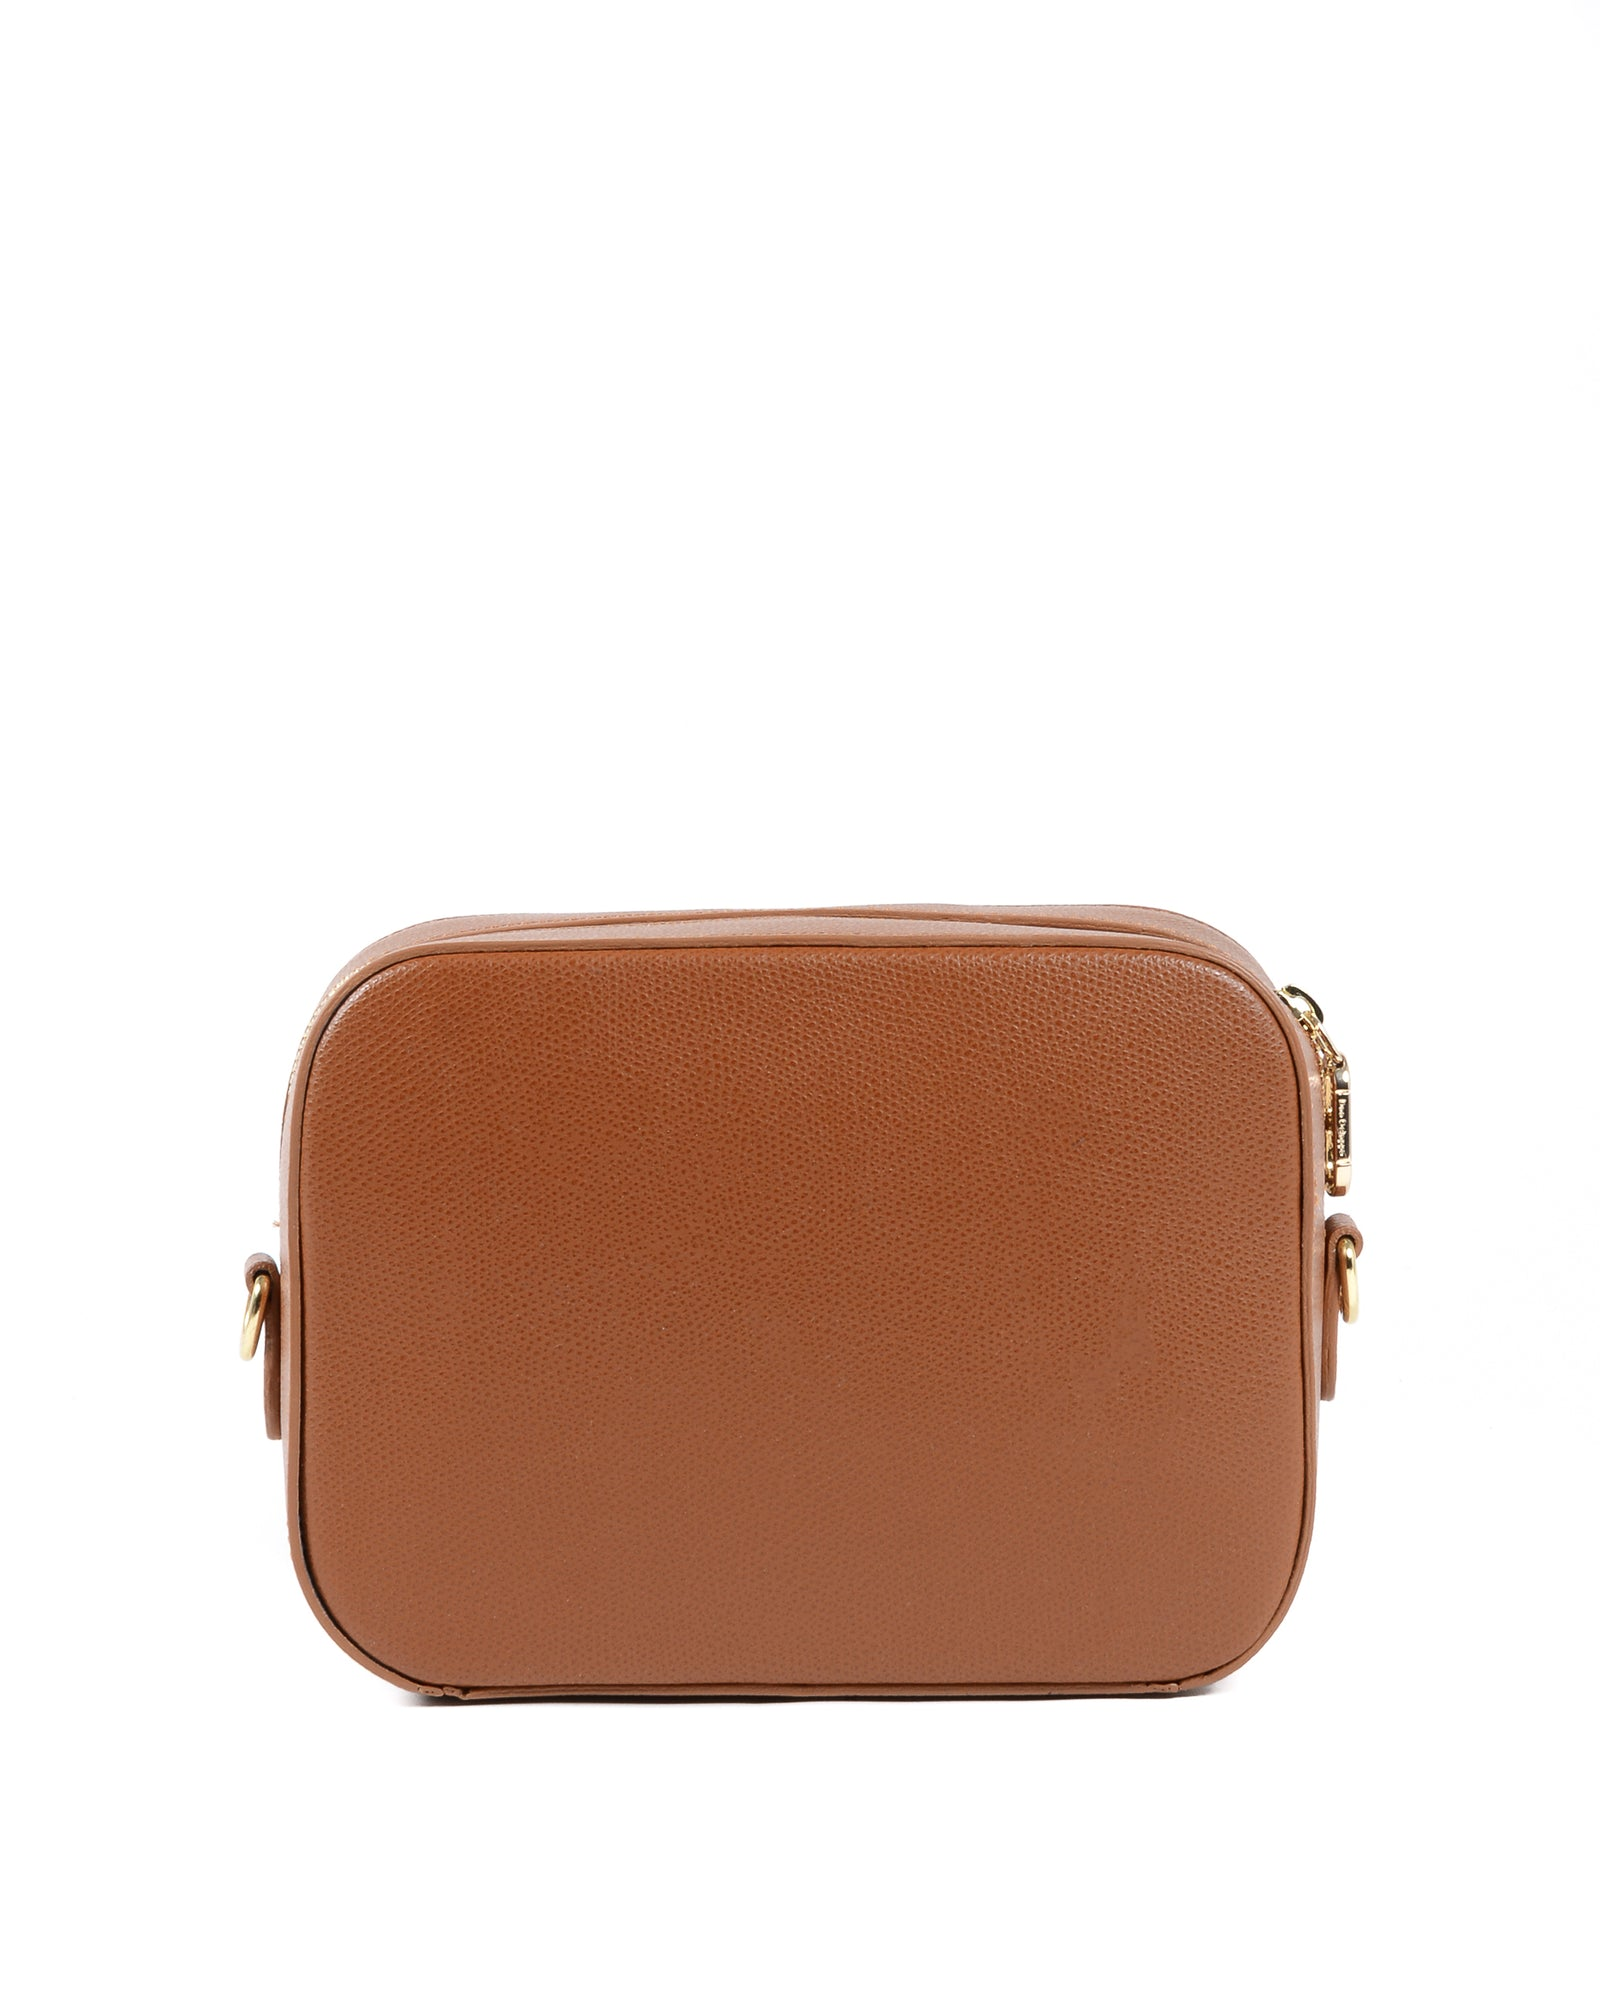 Dee Catania Camera Bag